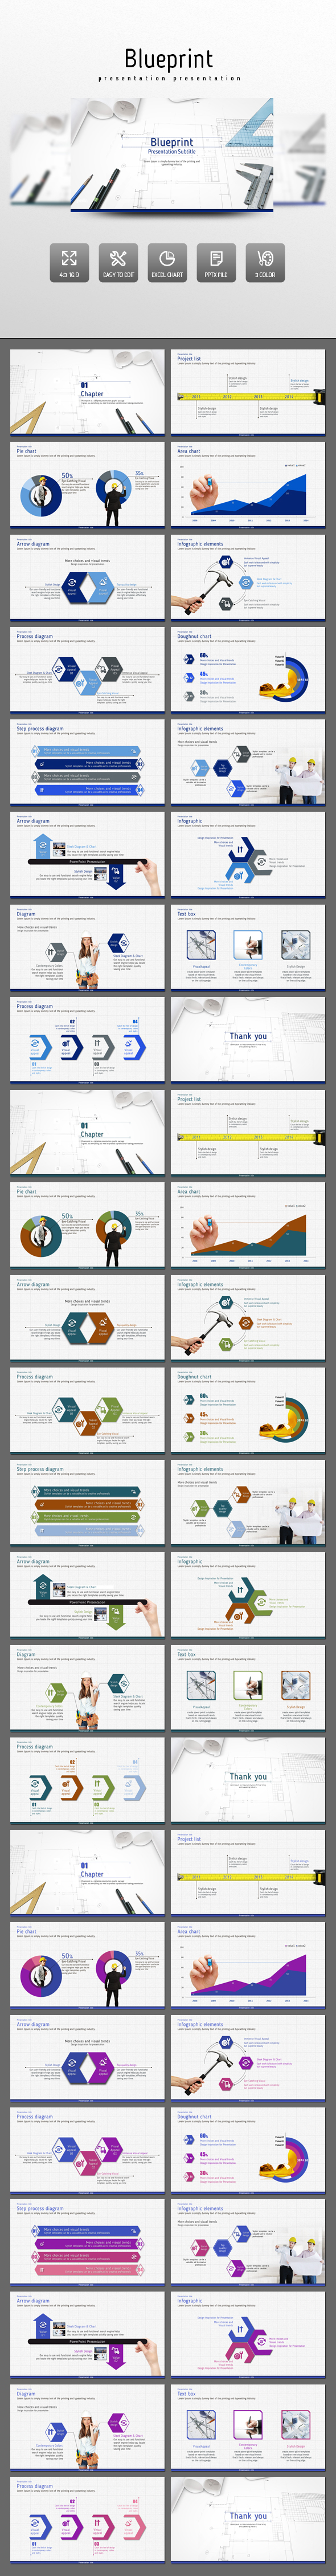 Blueprint powerpoint presentation template design slides blueprint powerpoint presentation template design slides download httpgraphicriver malvernweather Image collections